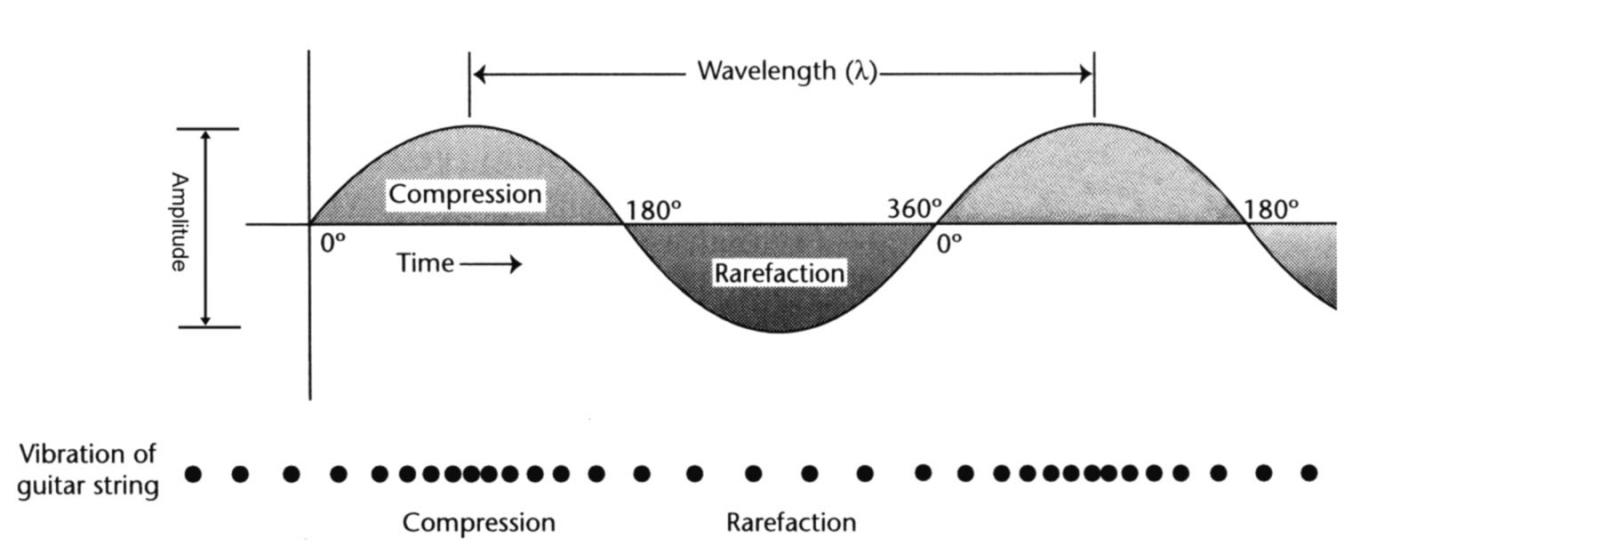 Sound Wave Compression and Rarefaction as Modeled by a Sine Wave